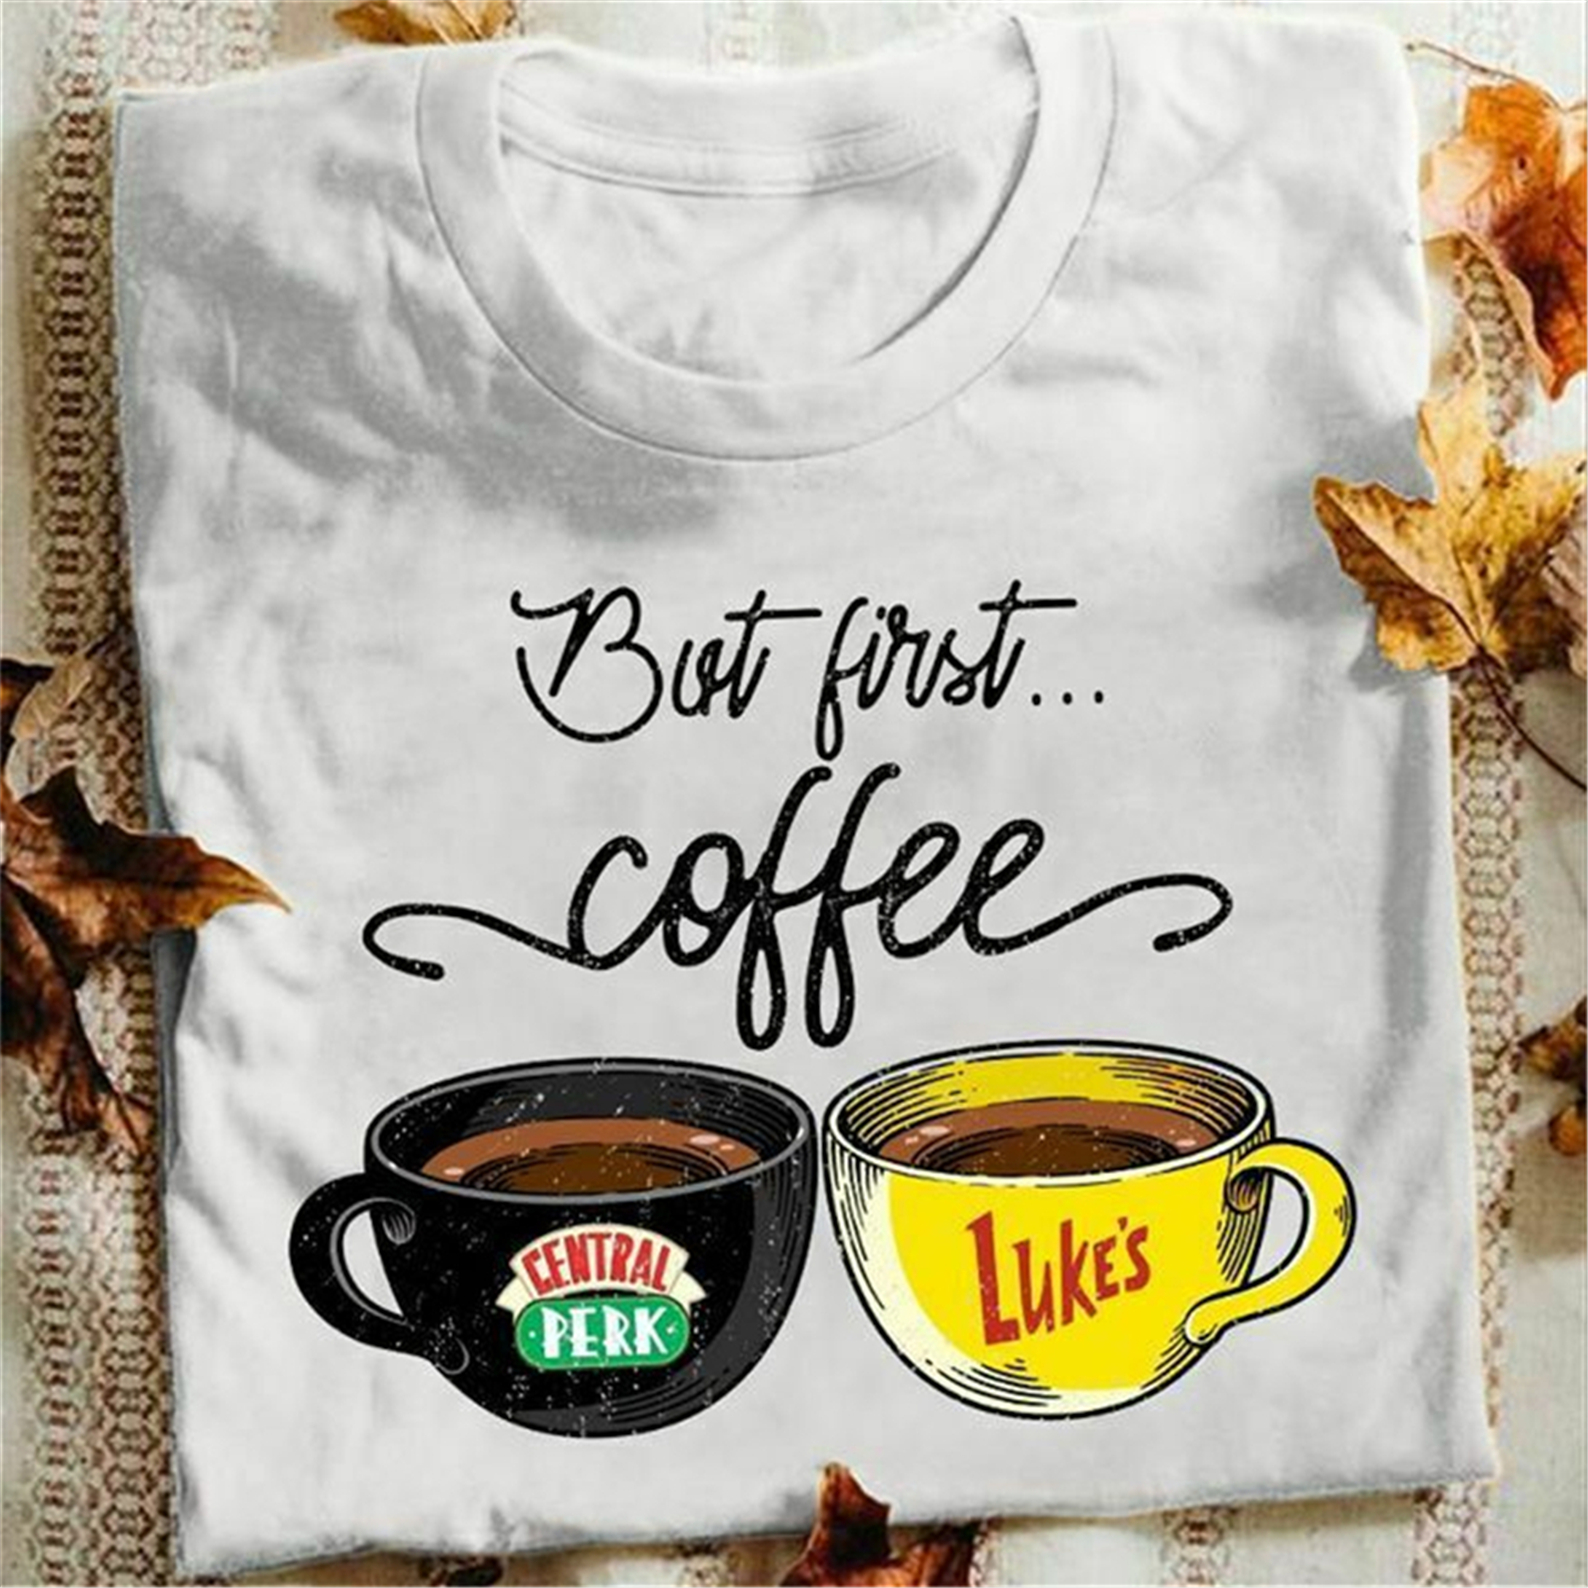 But First Coffee Friends Gilmore Girls Ladies T-Shirt Cotton S-3XL Tops Tee Shirt Free Shipping Light